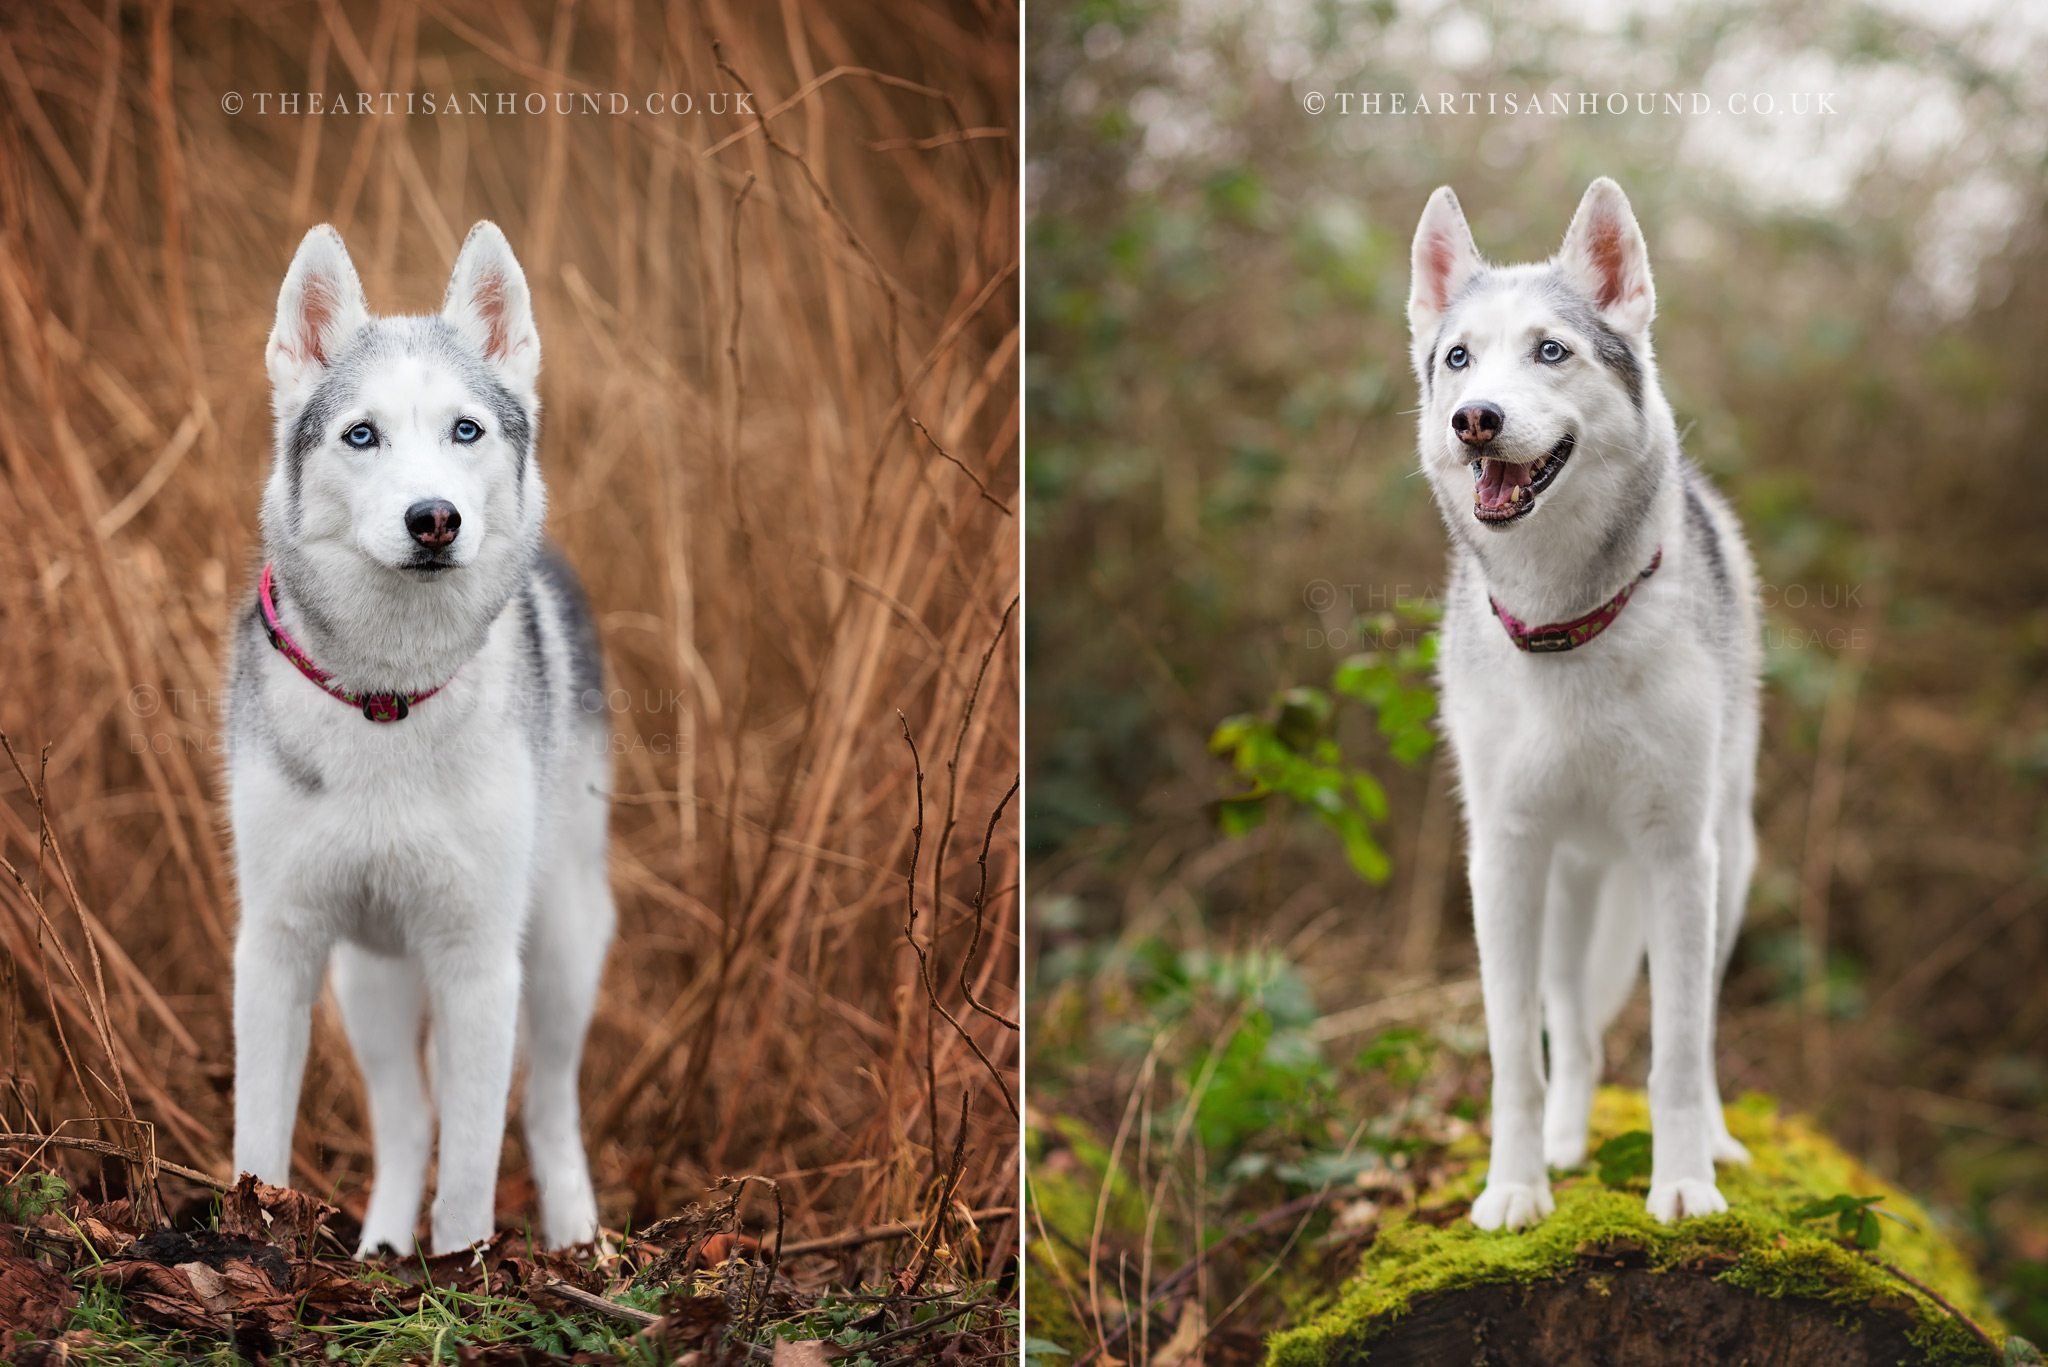 husky-sitting-in-bushes-and-standing-on-log